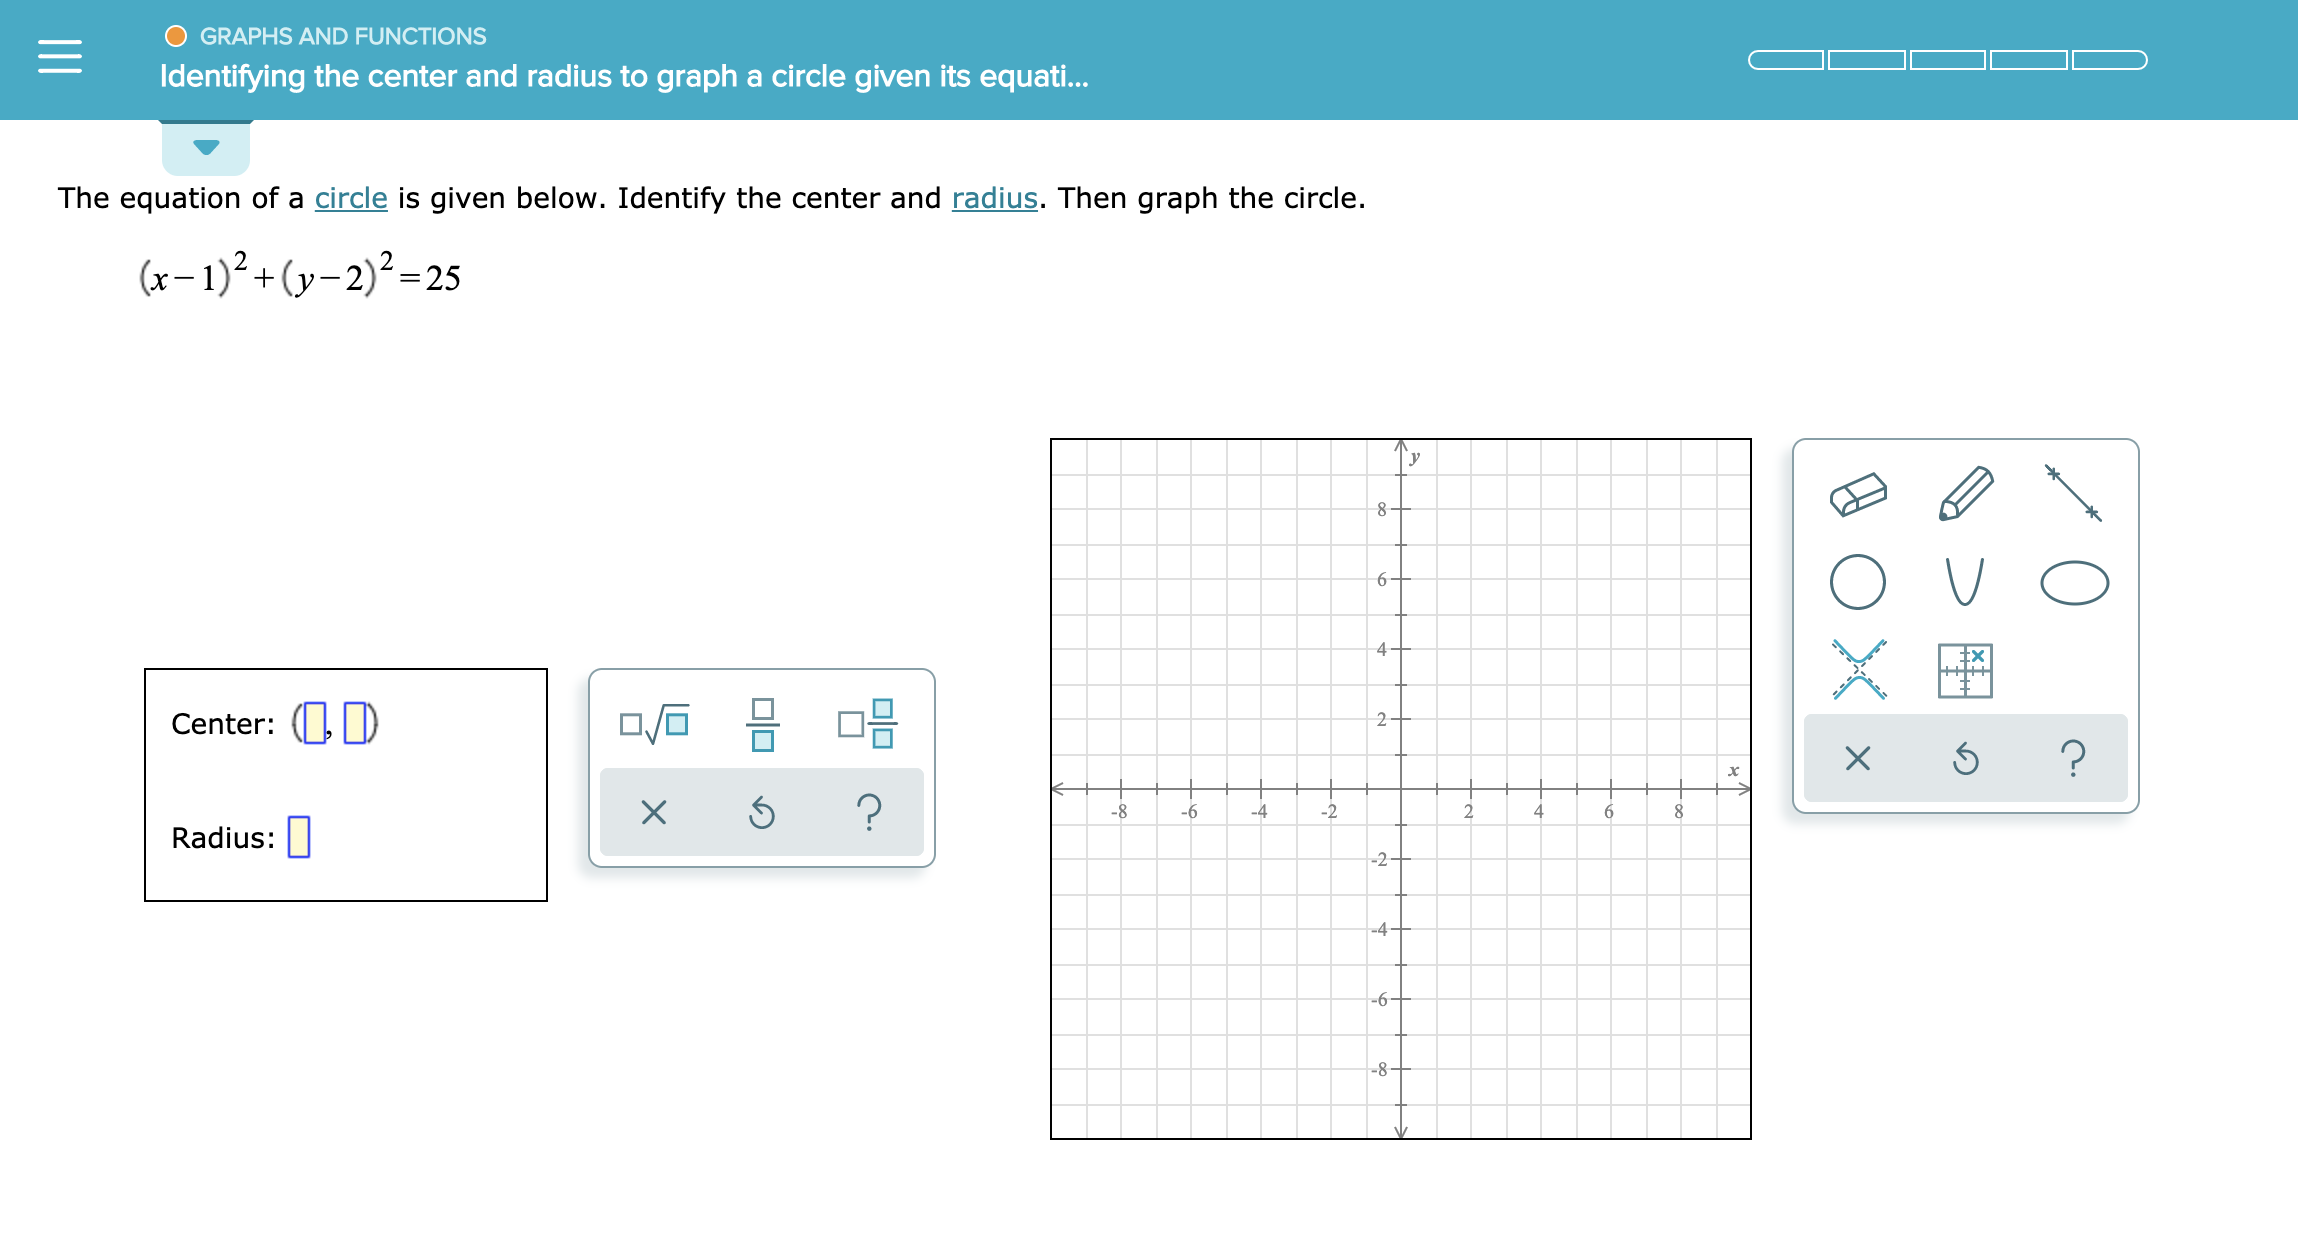 GRAPHS AND FUNCTIONS Identifying the center and radius to graph a circle given its equati... The equation of a circle is given below. Identify the center and radius. Then graph the circle. (-)2+(y2)225 _ 8 6 4 Center: ? ? -8 -6 -2 -4 4 Radius: -2 -4 6 -8- X X II